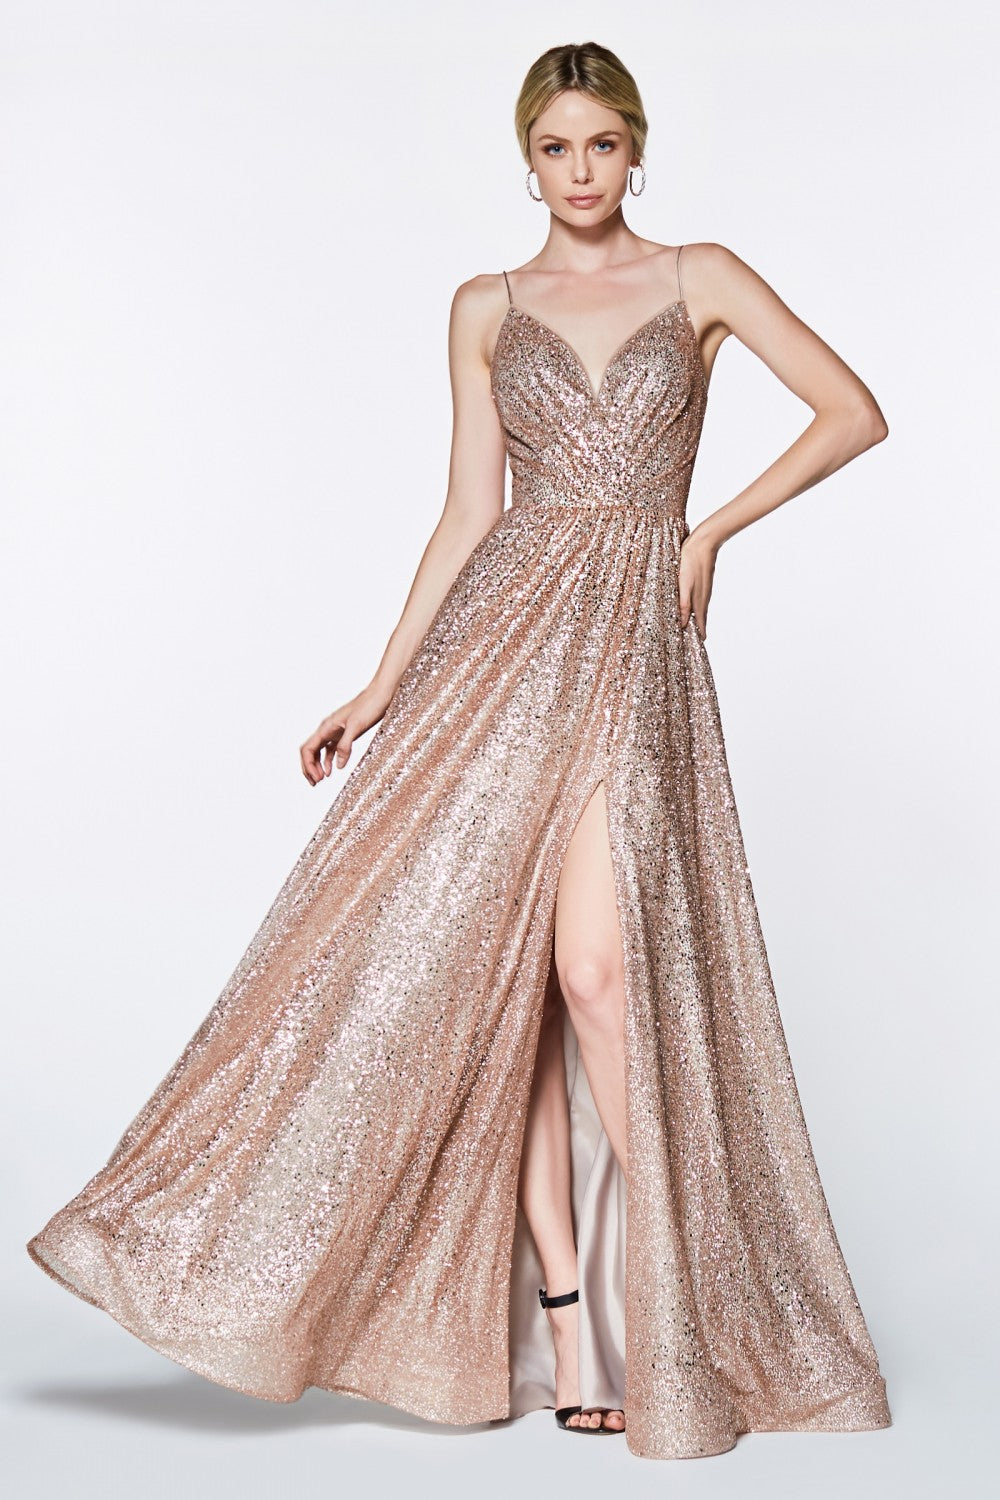 A-Line Fully Glittered Gown With Sweetheart Neckline And Leg Slit